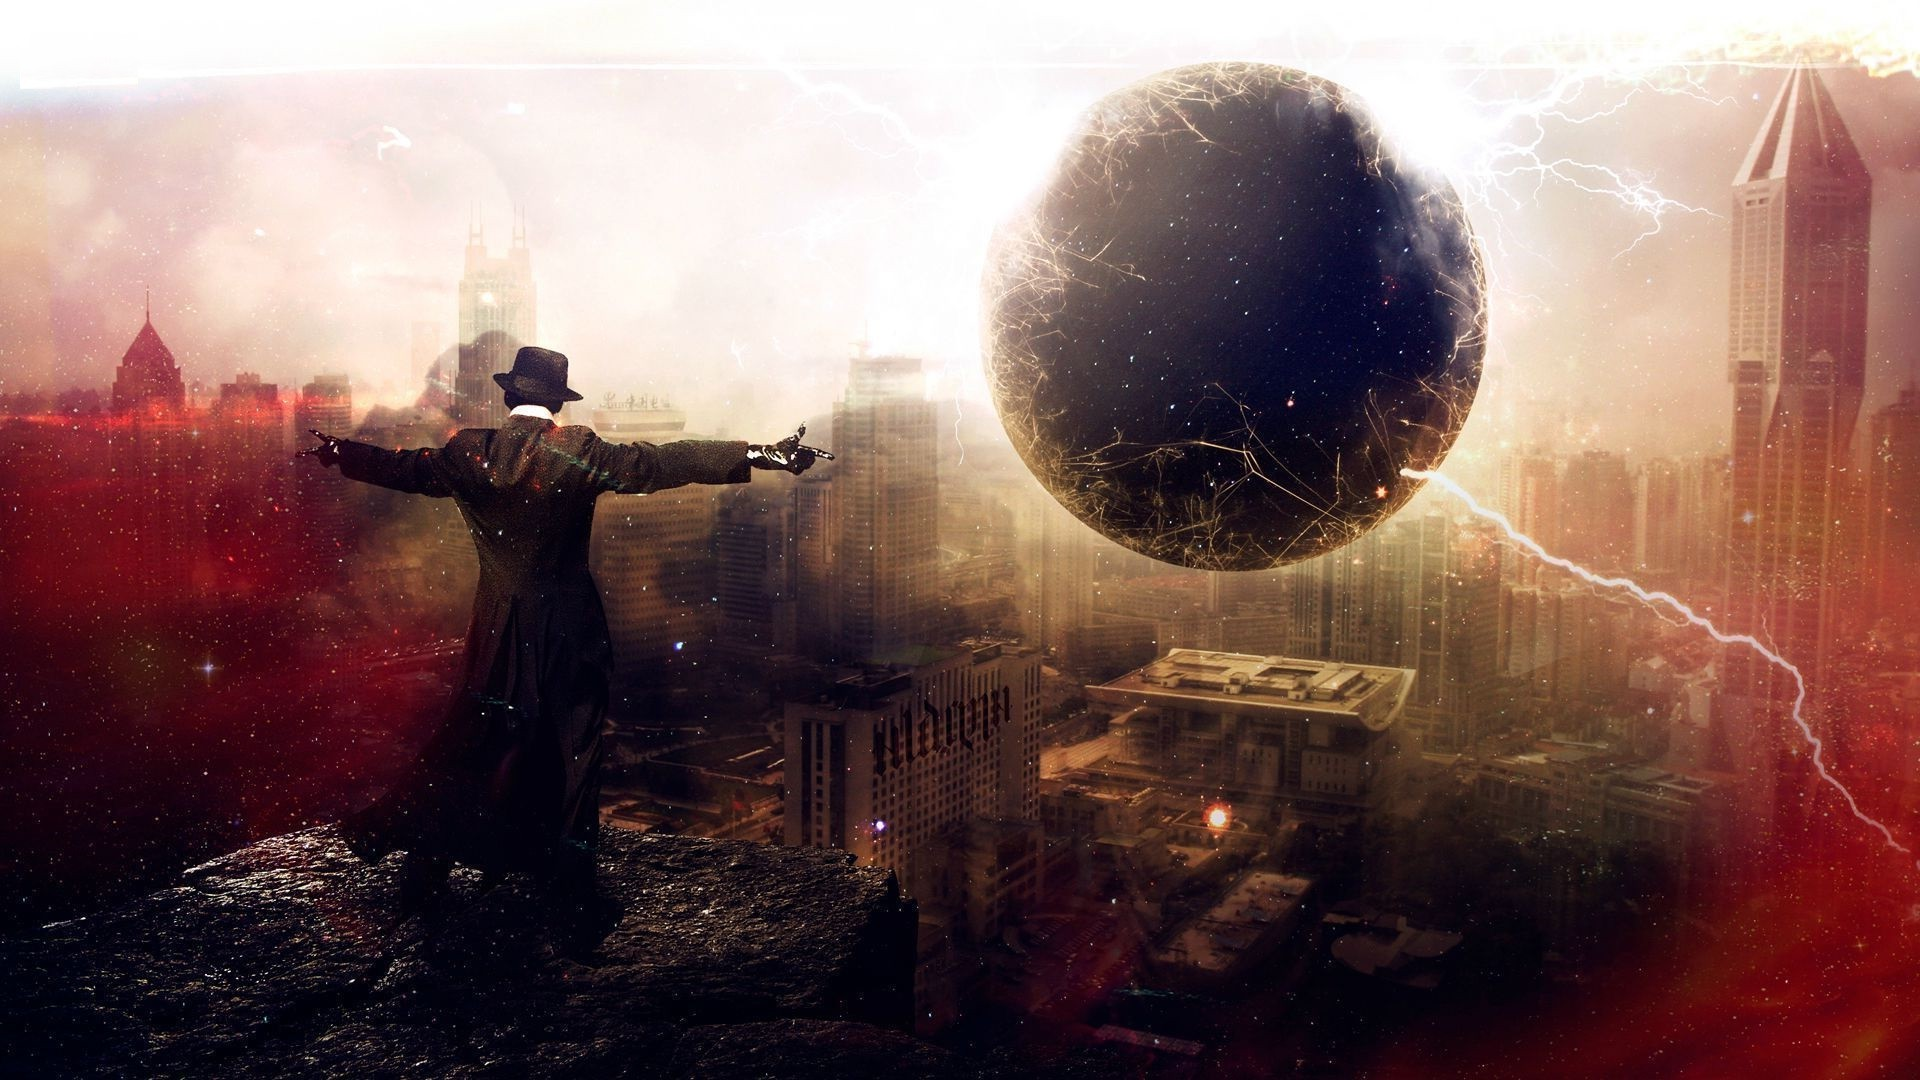 3d Graphic Wallpaper 1280x1024 Men Artwork Digital Art Fantasy Art Black Holes City